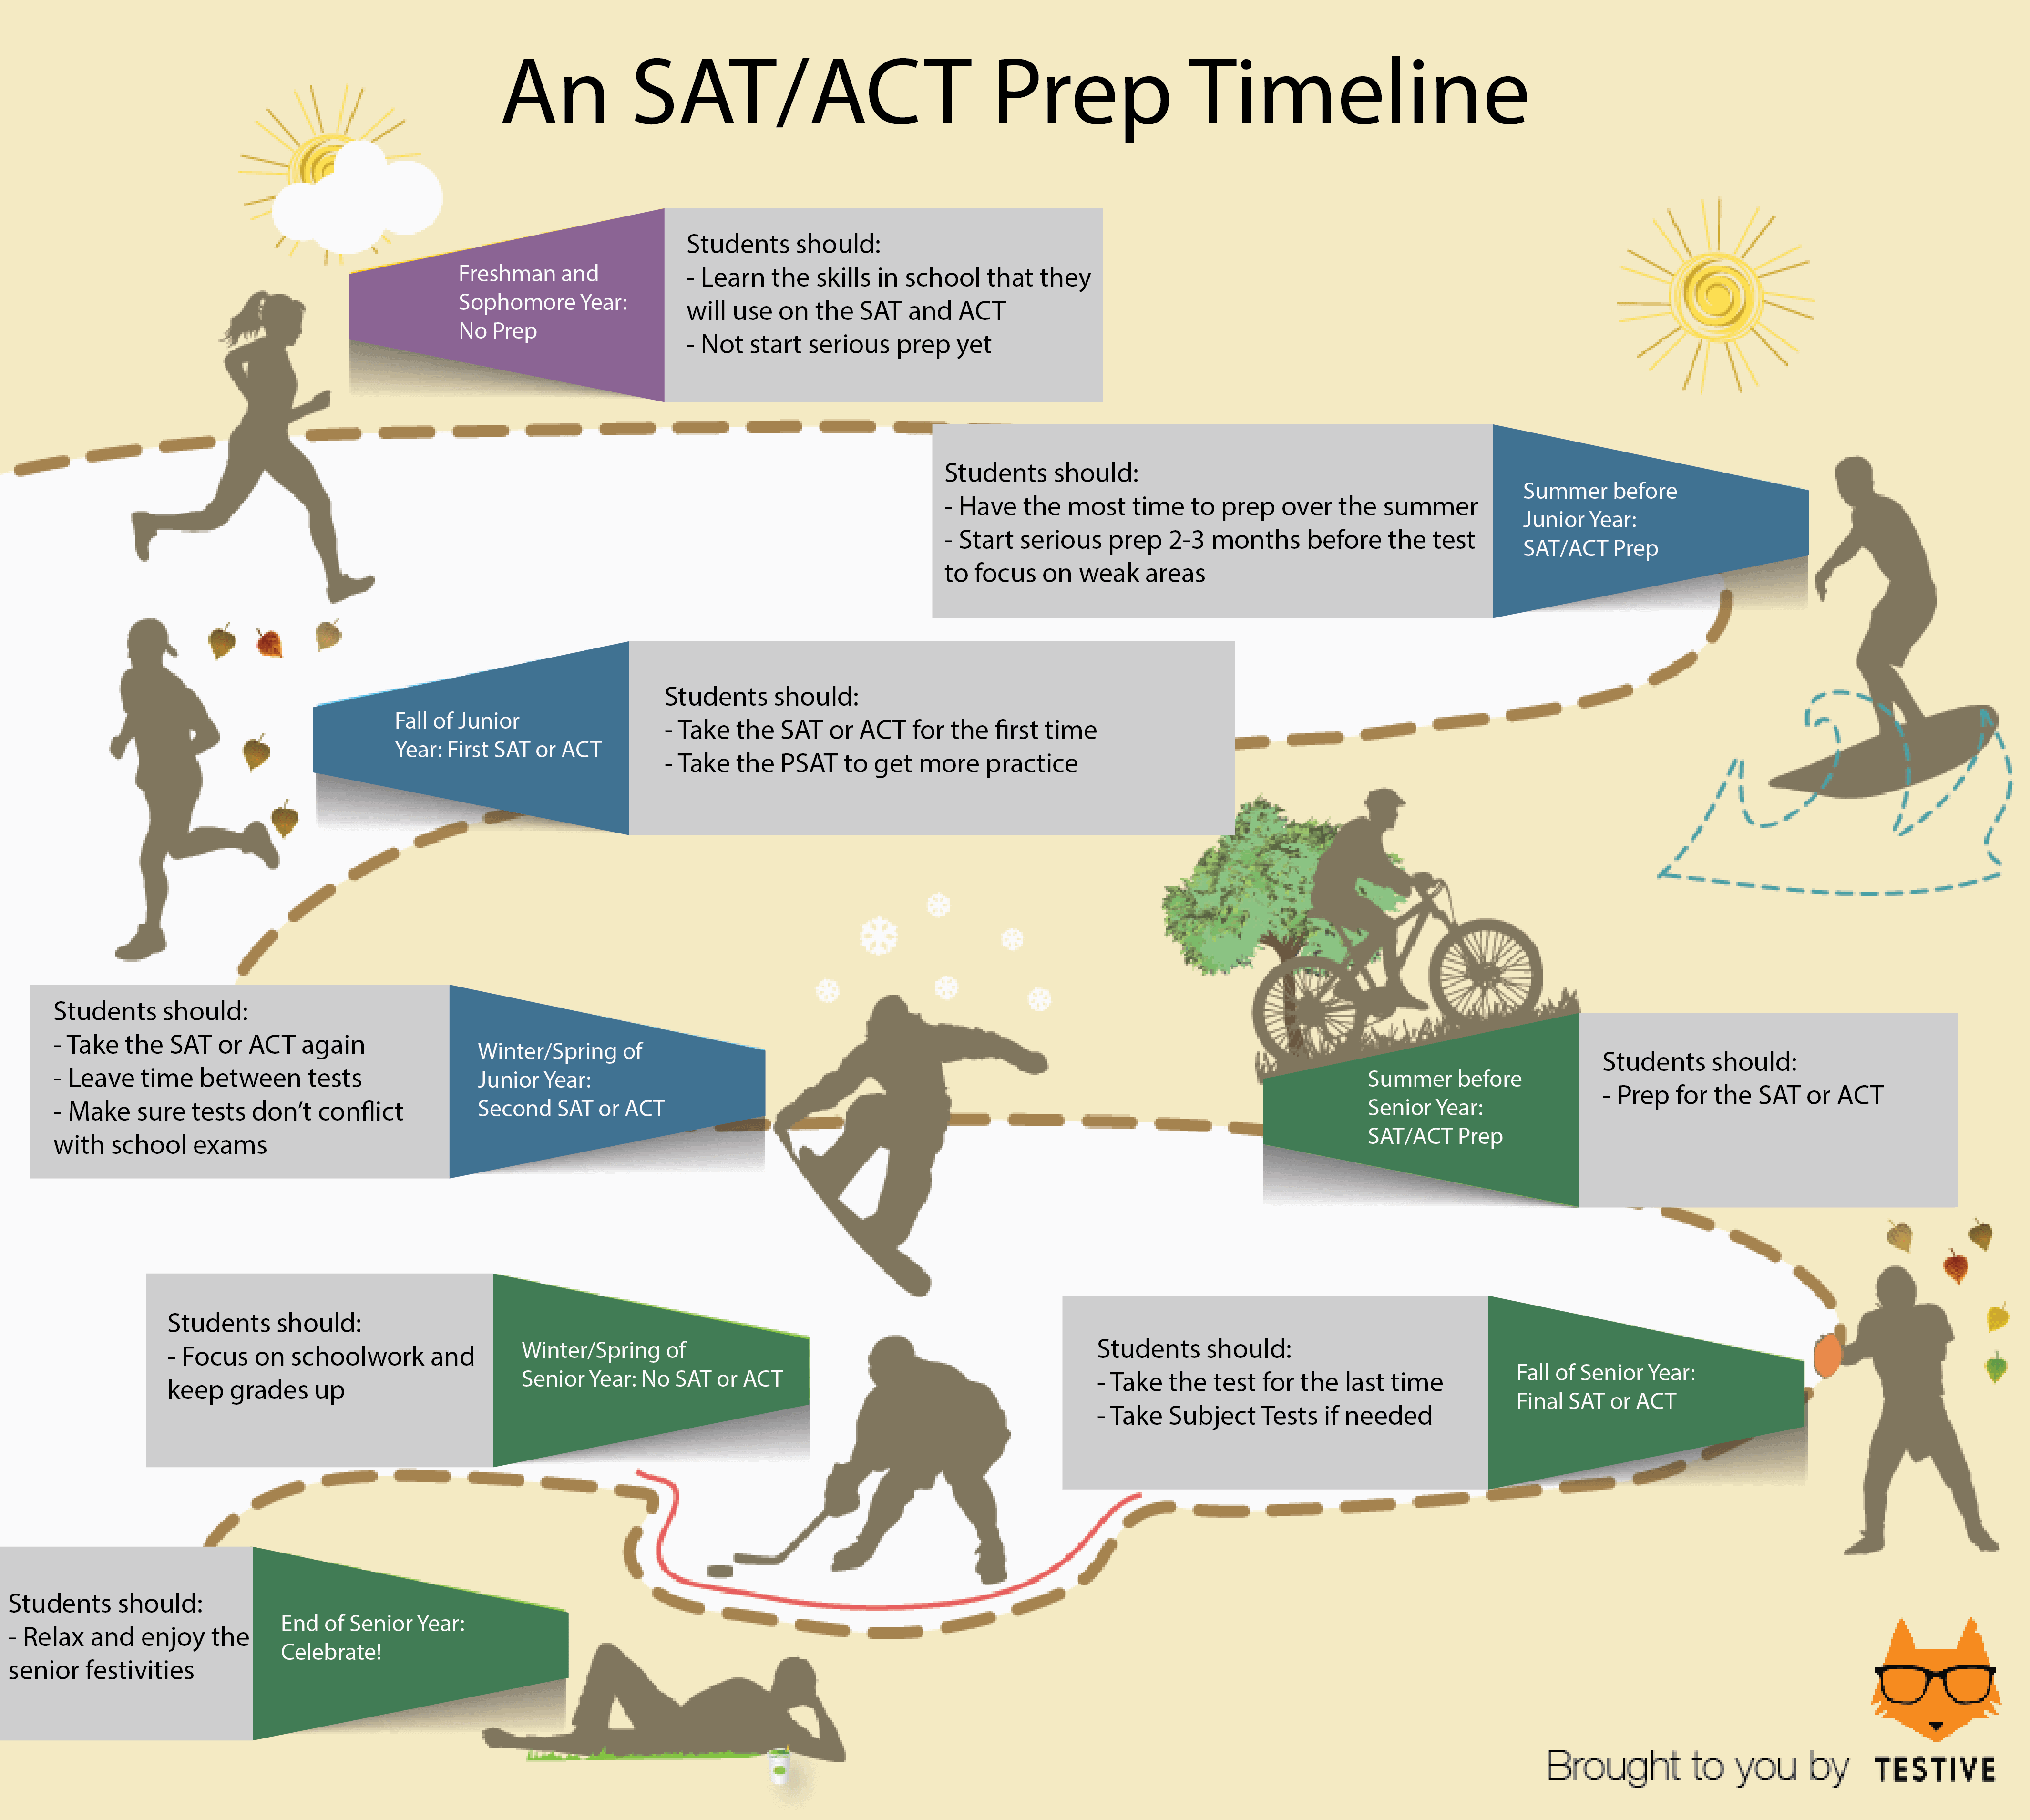 Free Sat Act Prep Software For Students